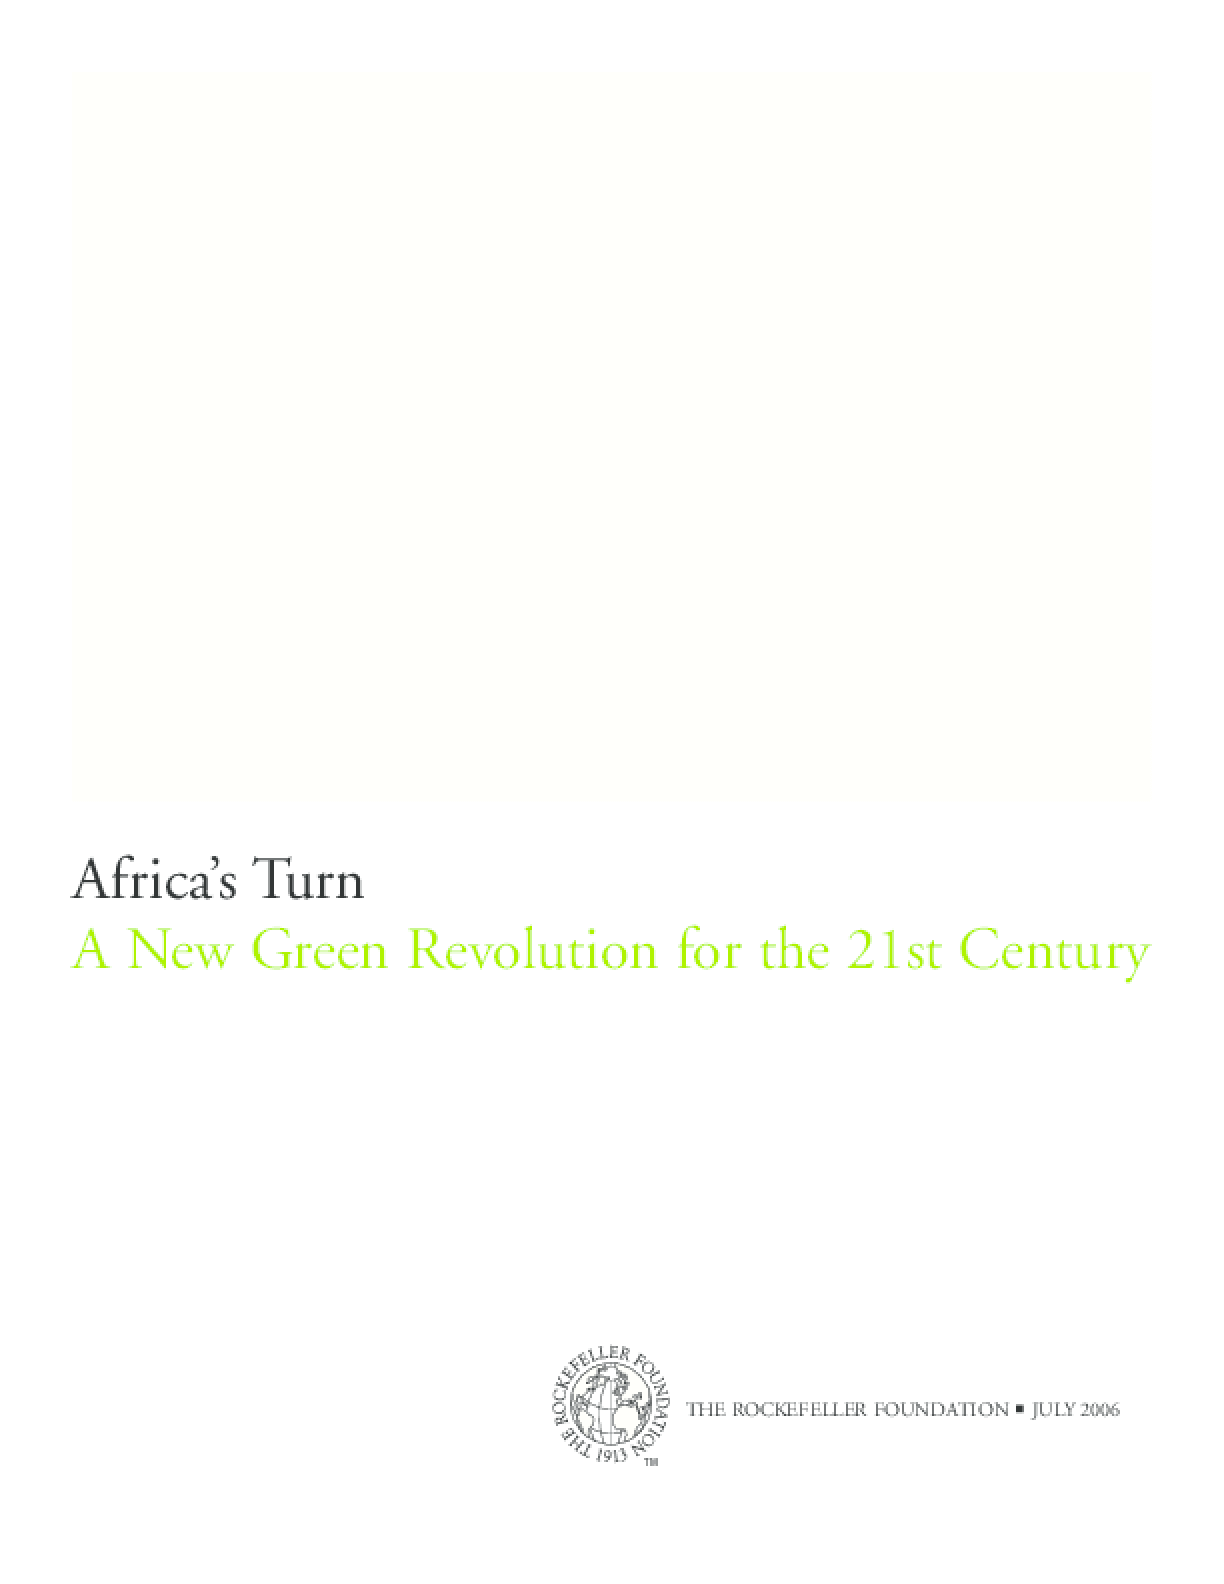 Africa's Turn: A New Green Revolution for the 21st Century